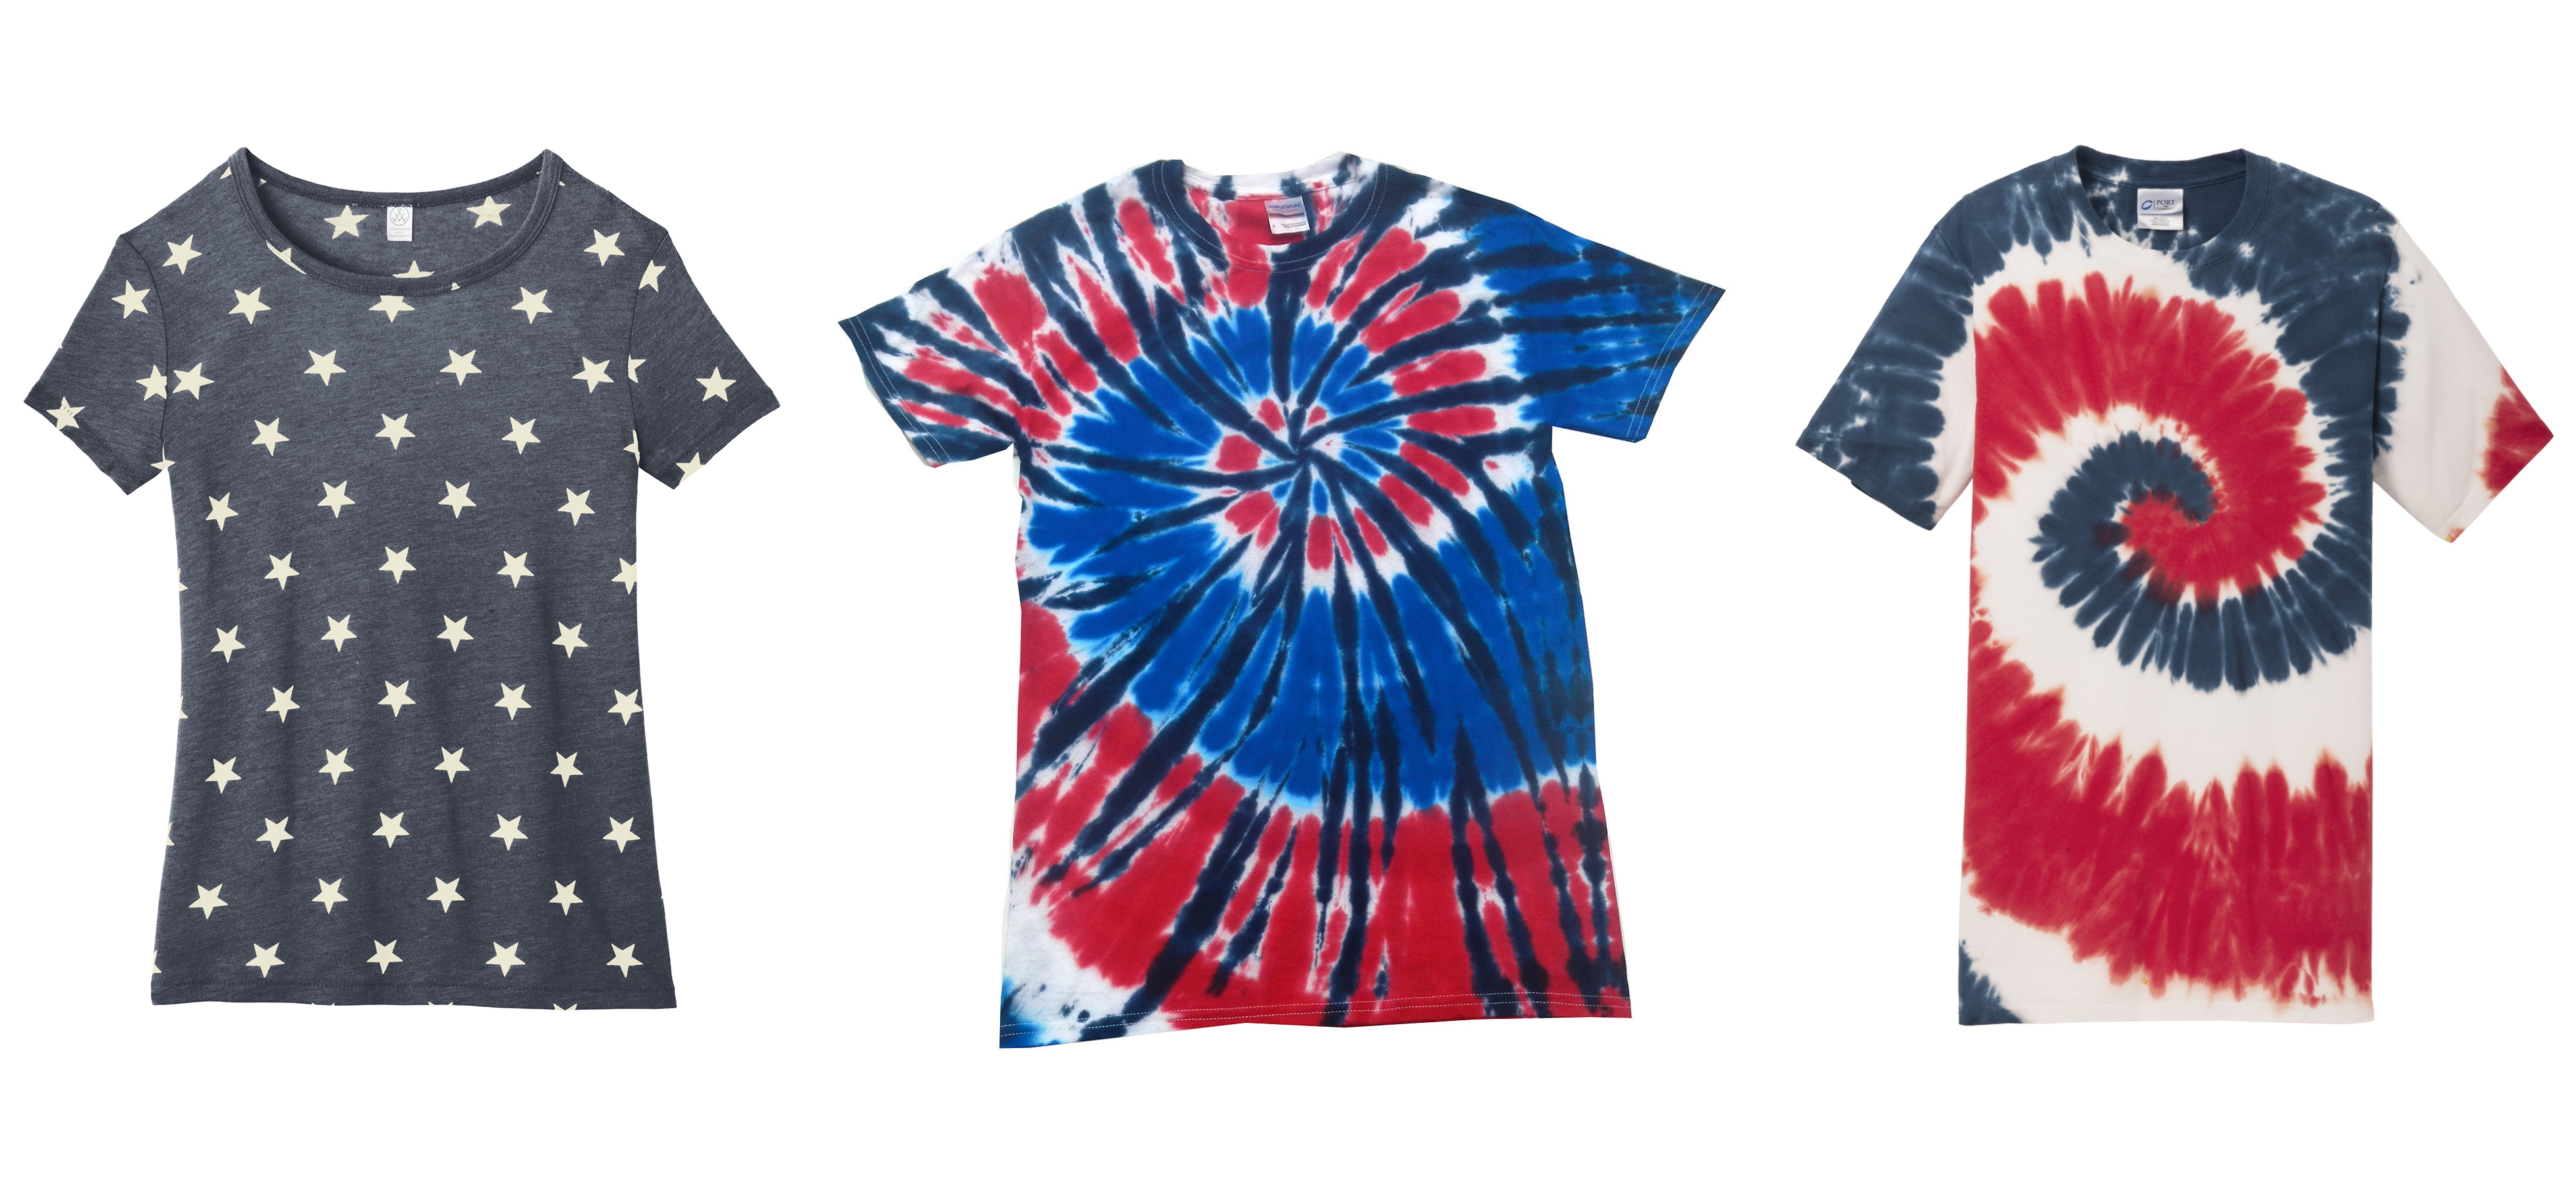 Tees for 4th of July from NYFifth